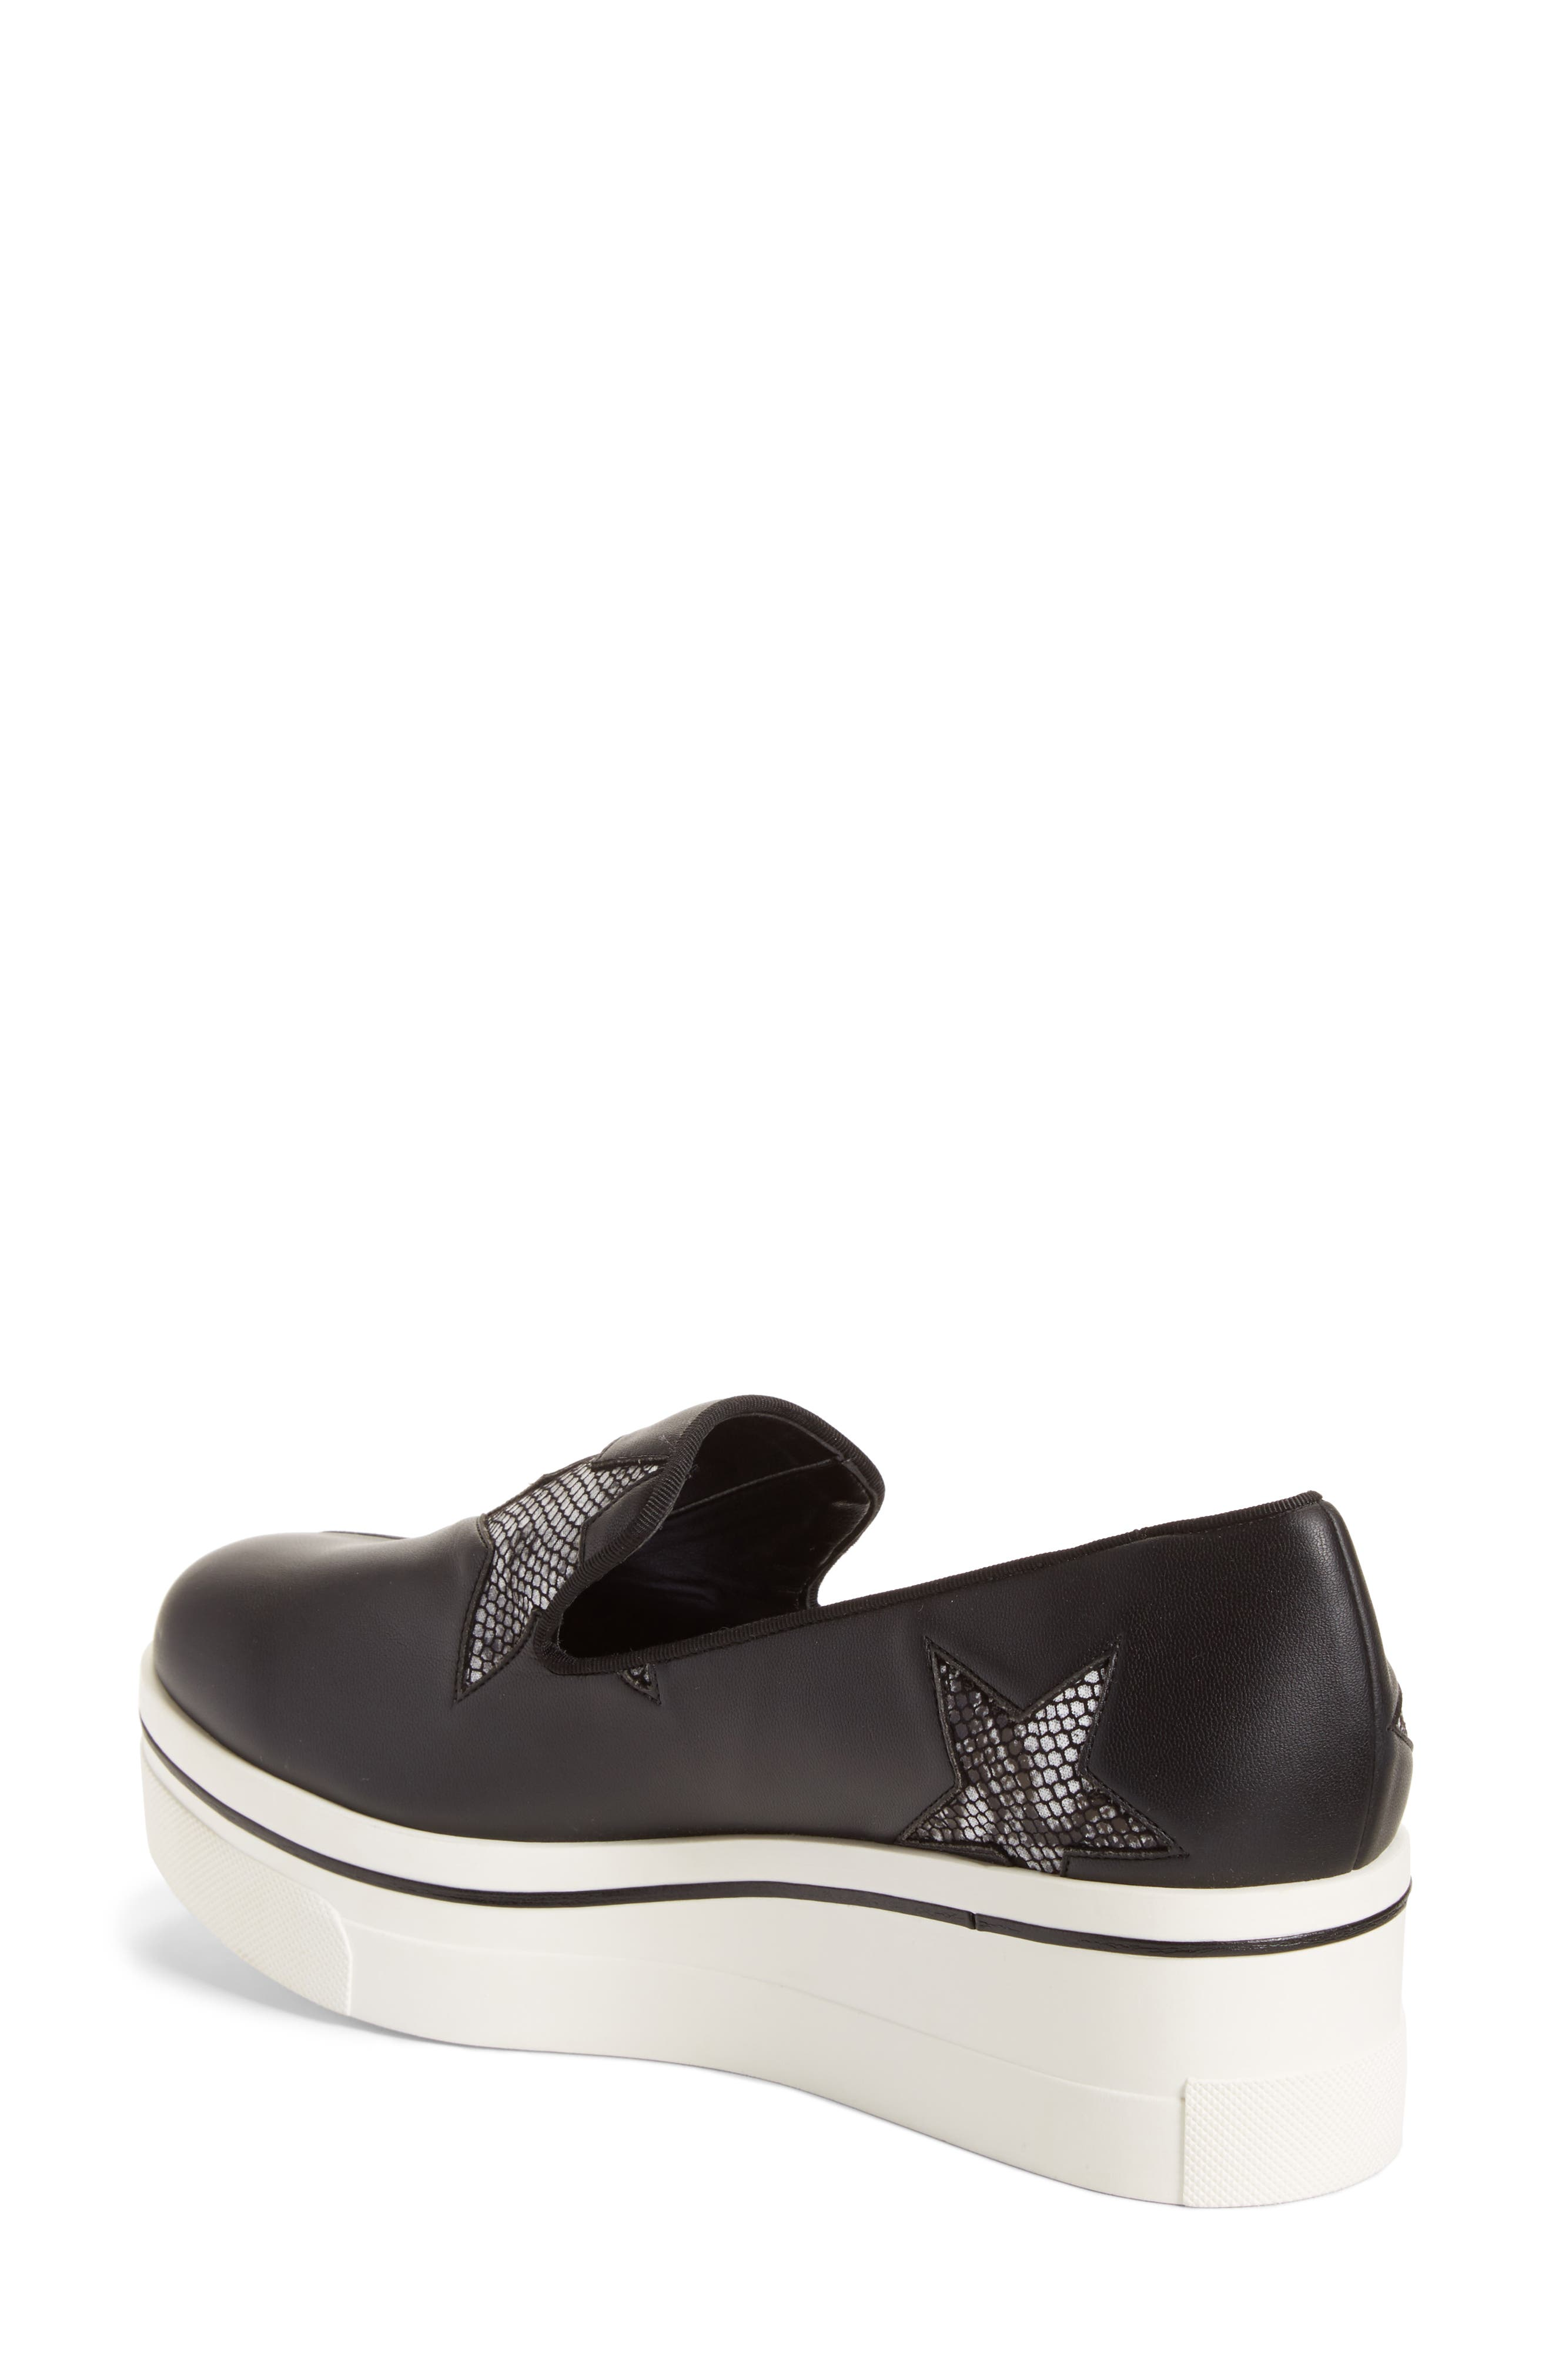 Alternate Image 2  - Stella McCartney Binx Stars Platform Sneaker (Women)